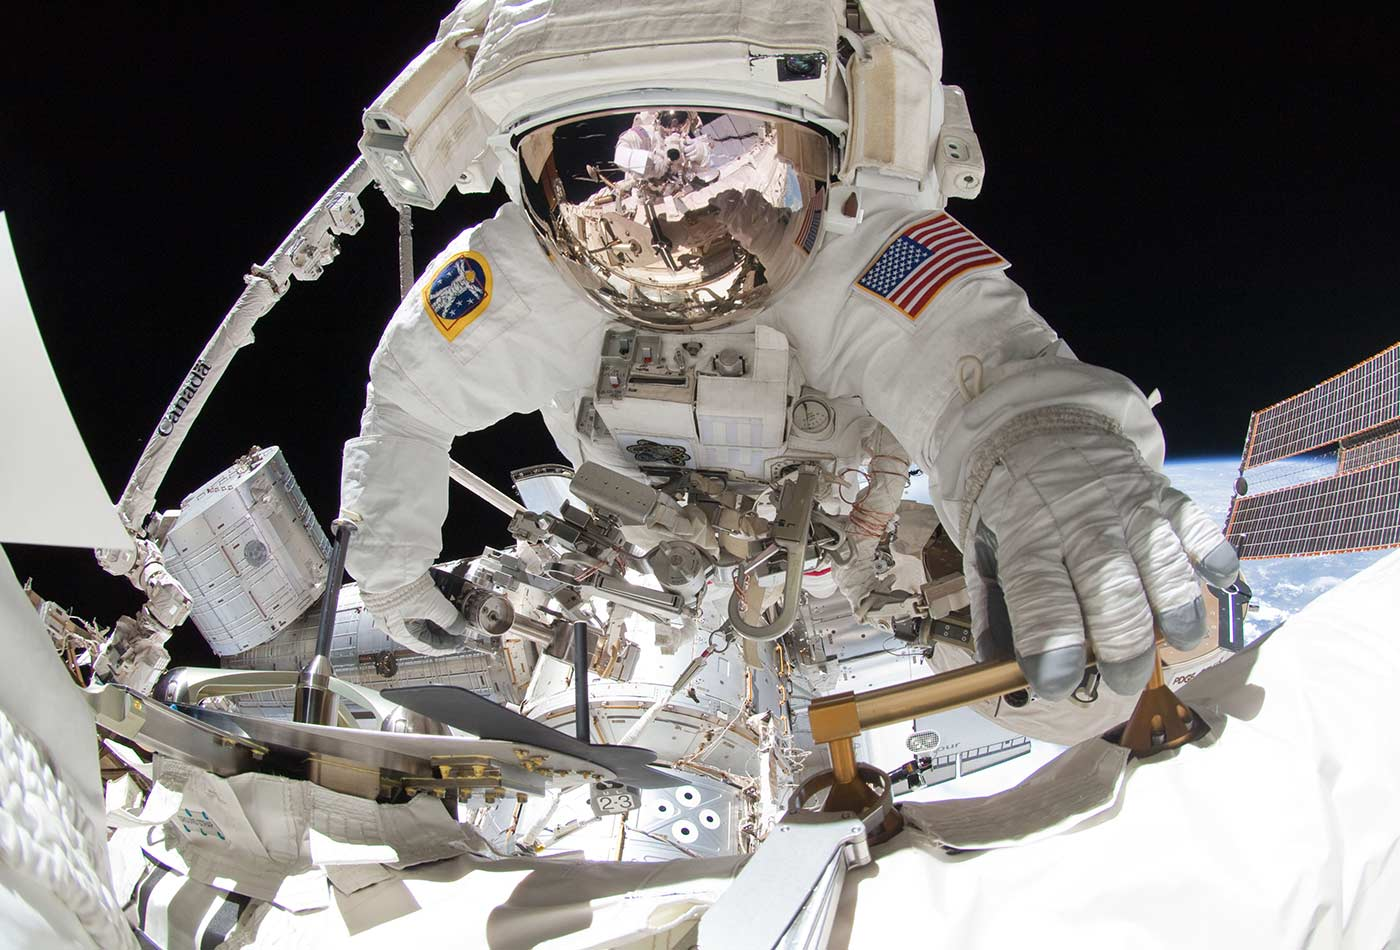 NASA astronaut Greg Chamitoff conducting extravehicular activity (EVA) on the International Space Station, 2011.